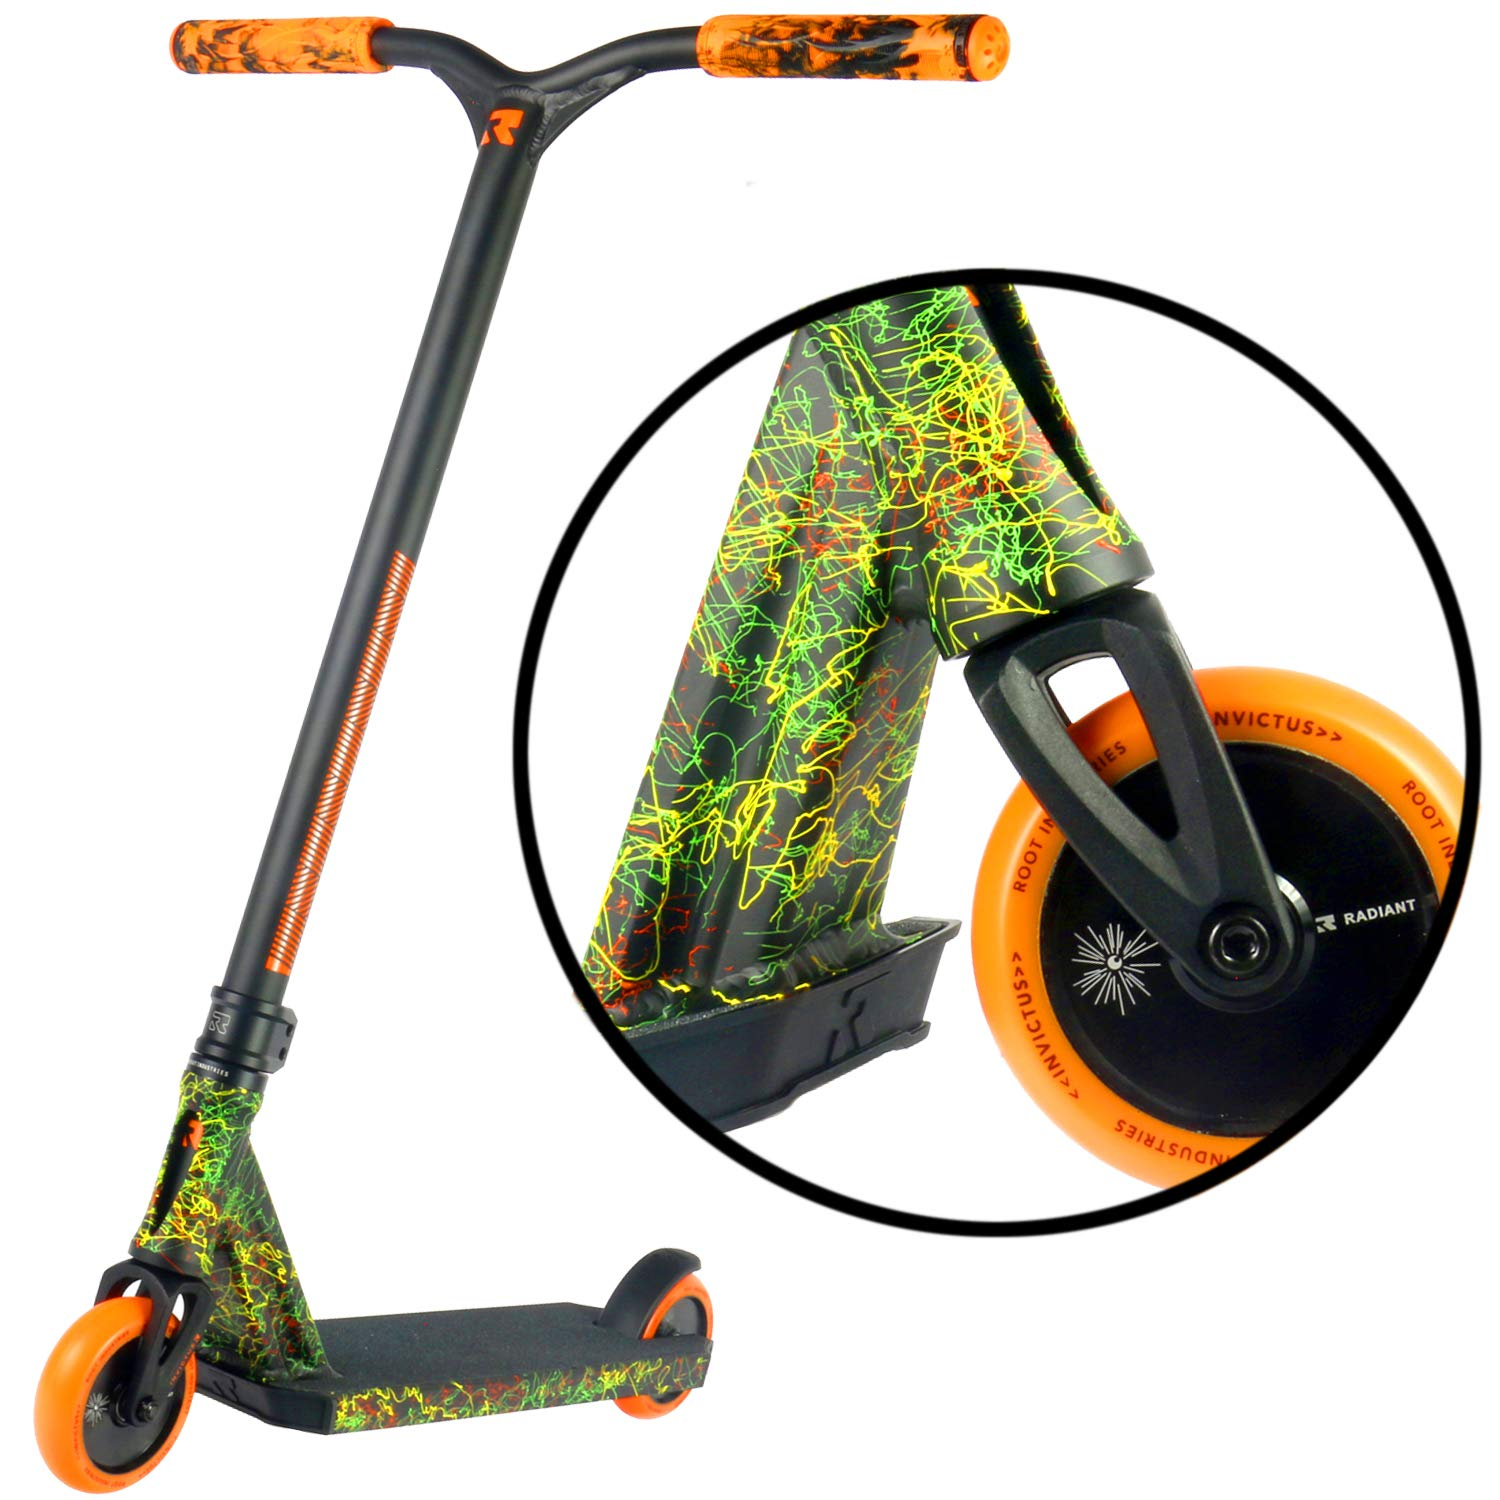 Invictus Complete Pro Scooter - Stunt Scooters - Perfect for Any Level Freestyle Riders - Pro Scooters for Kids - Quality Scooter Deck, Pro Scooter ...